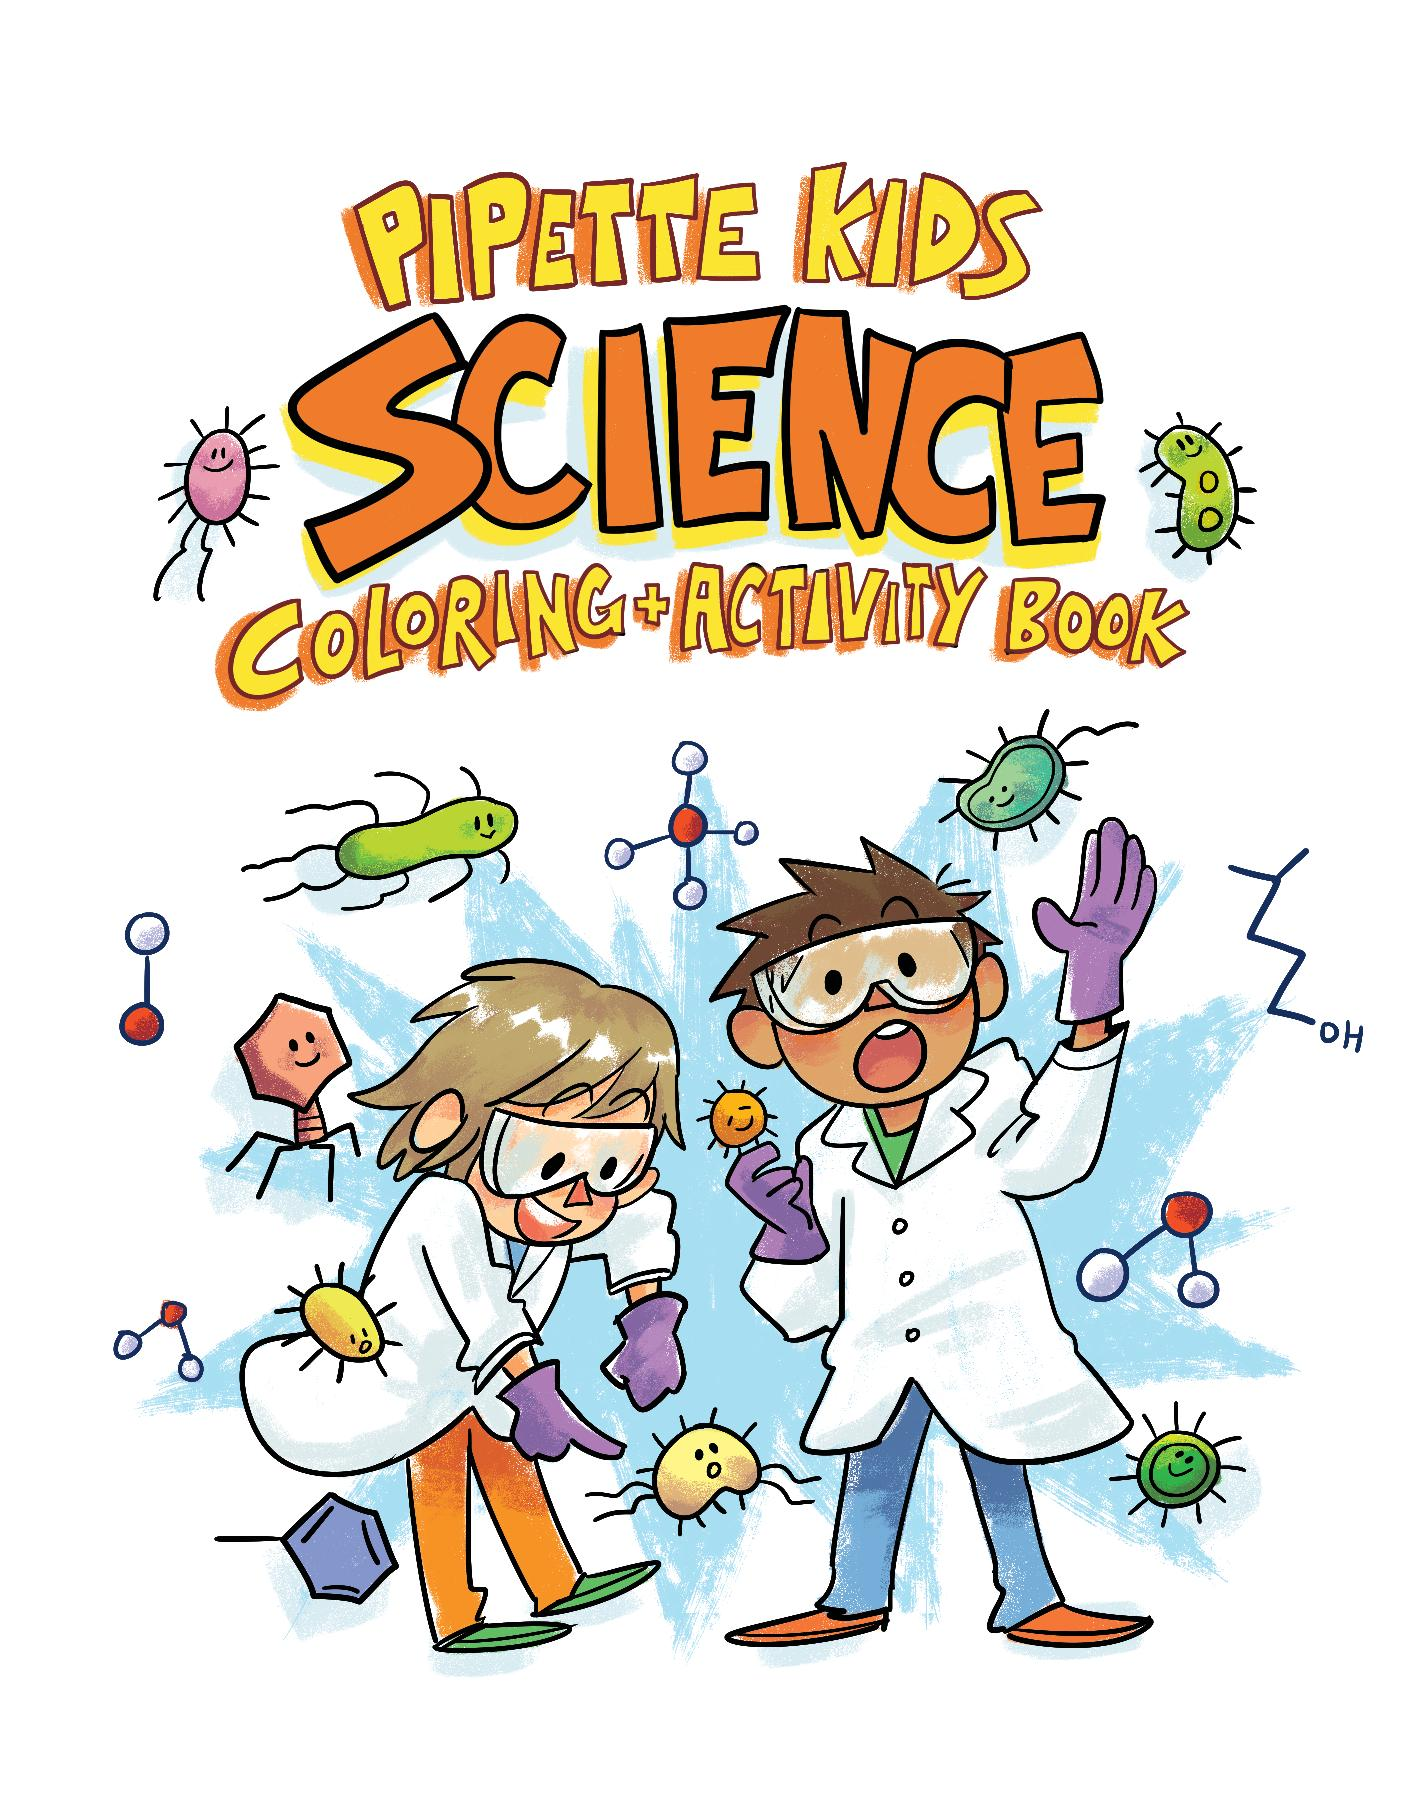 Science clipart science book. The pipette kids coloring